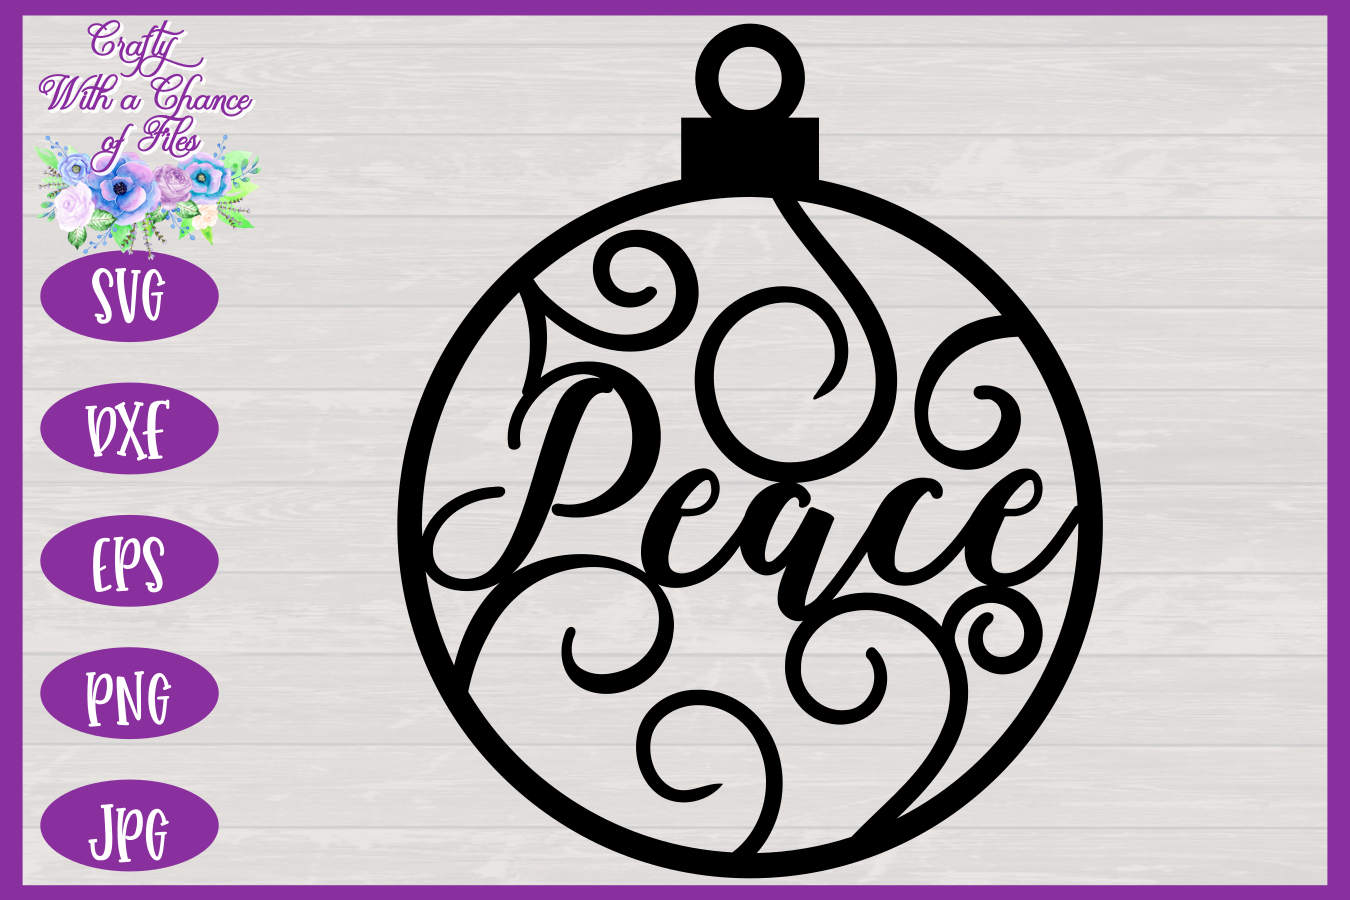 Christmas Word Ornaments SVG | Laser Cut Baubles SVG example image 7